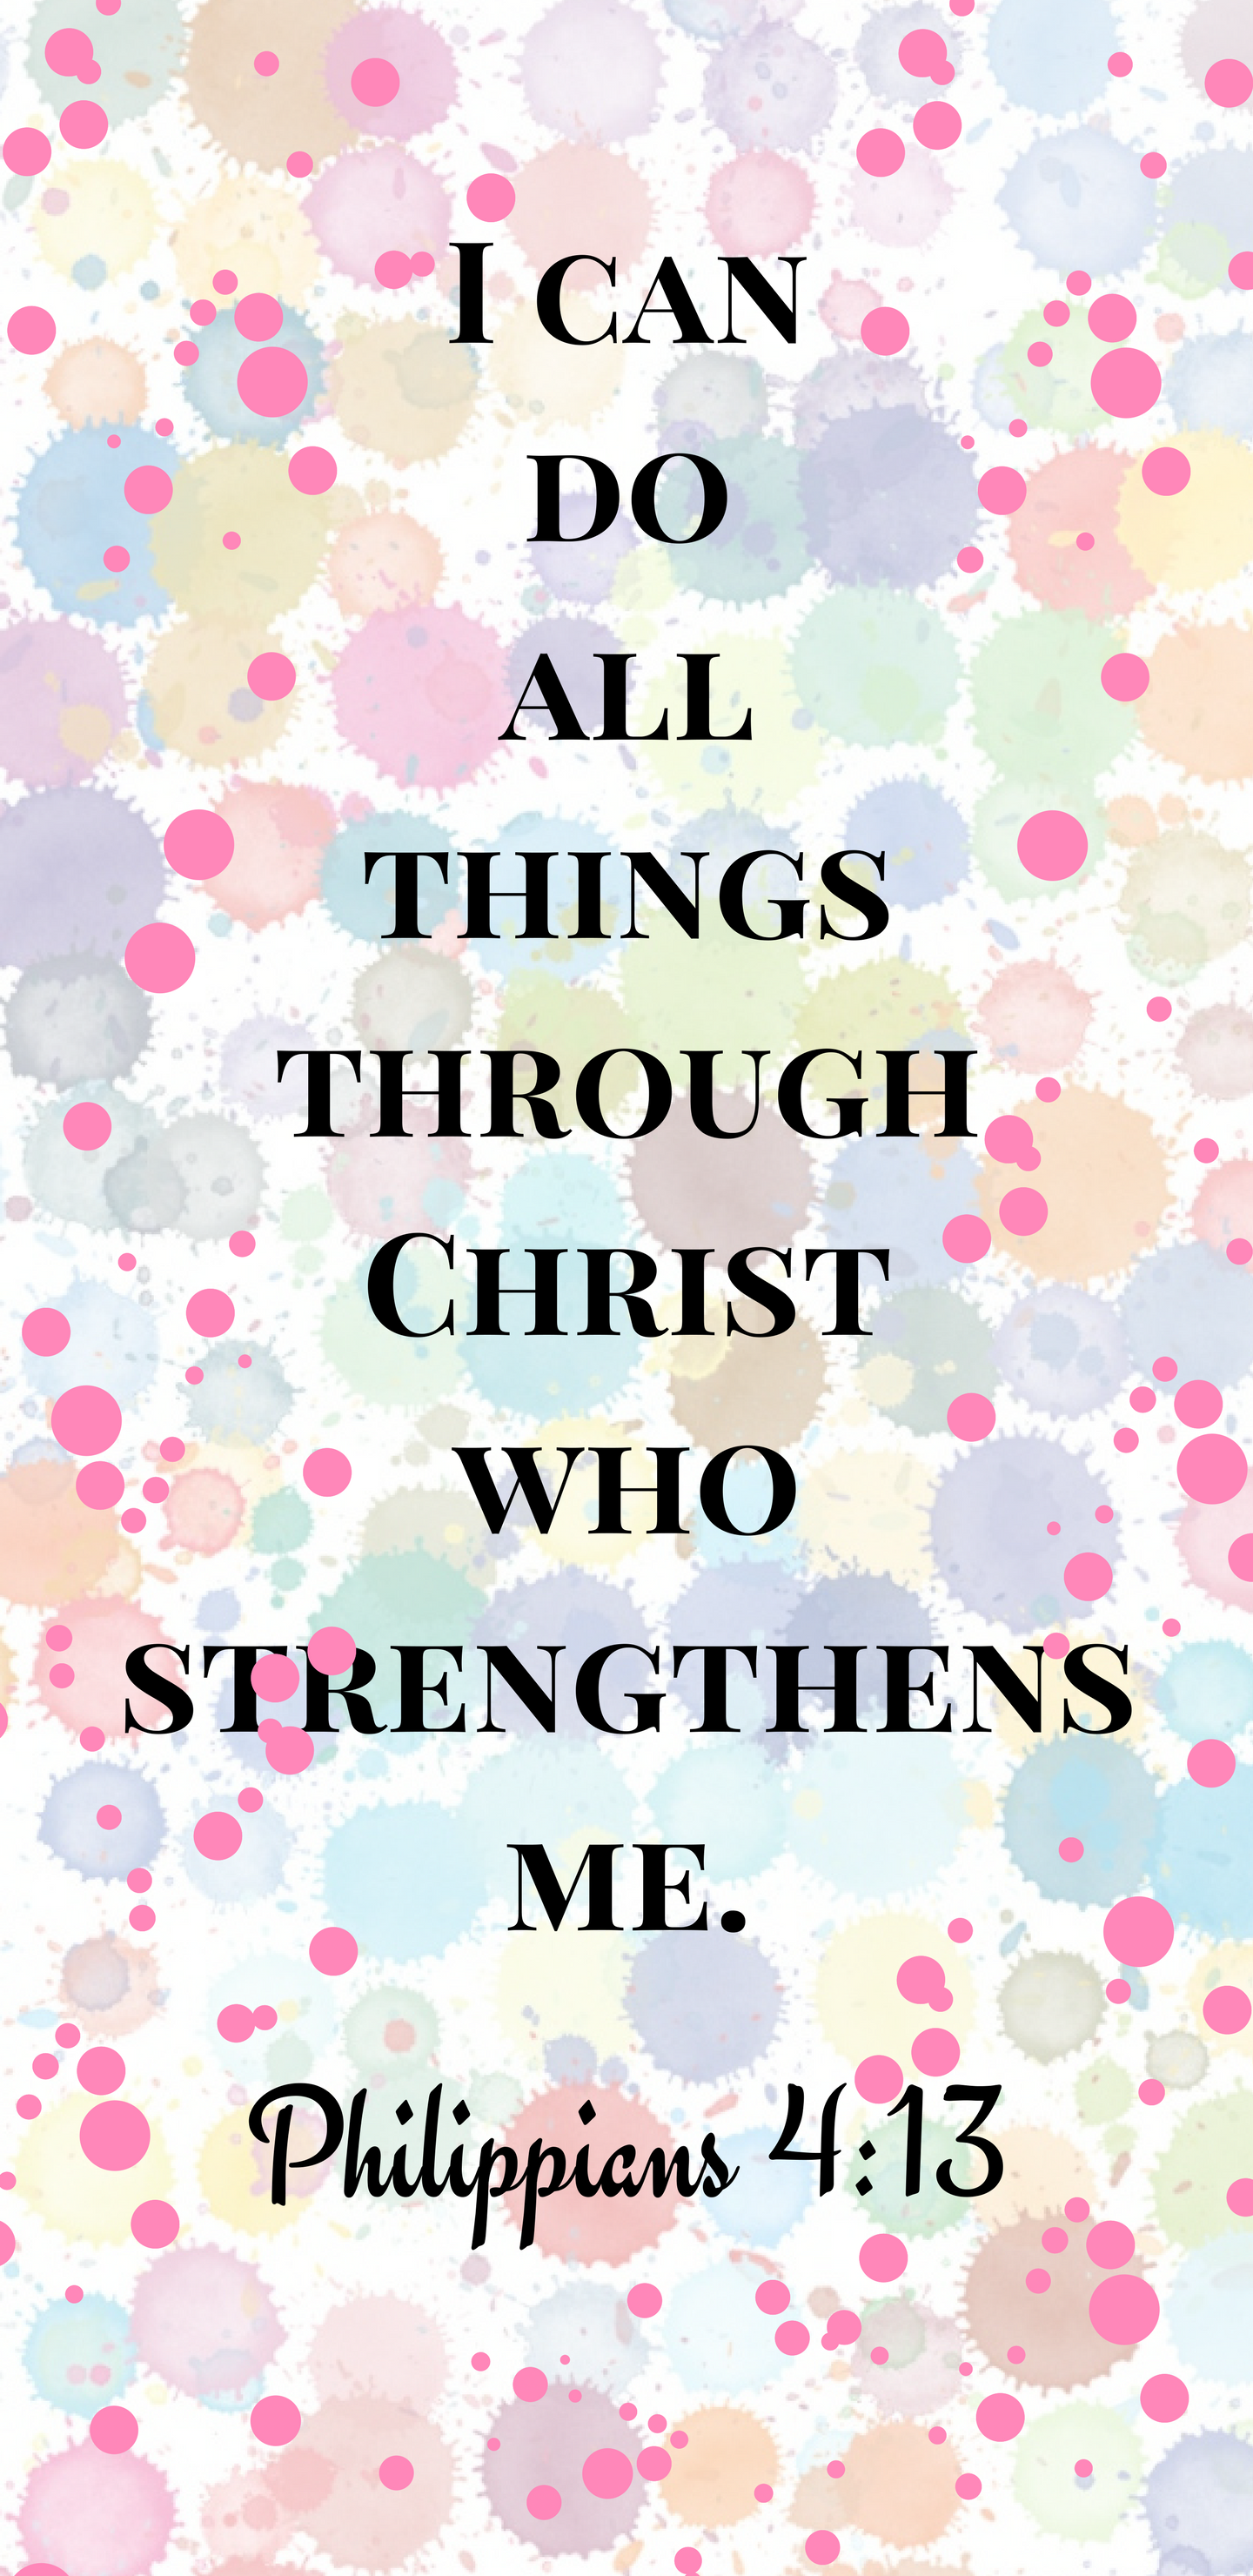 WallPapers Inspirational bible quotes, Free christian